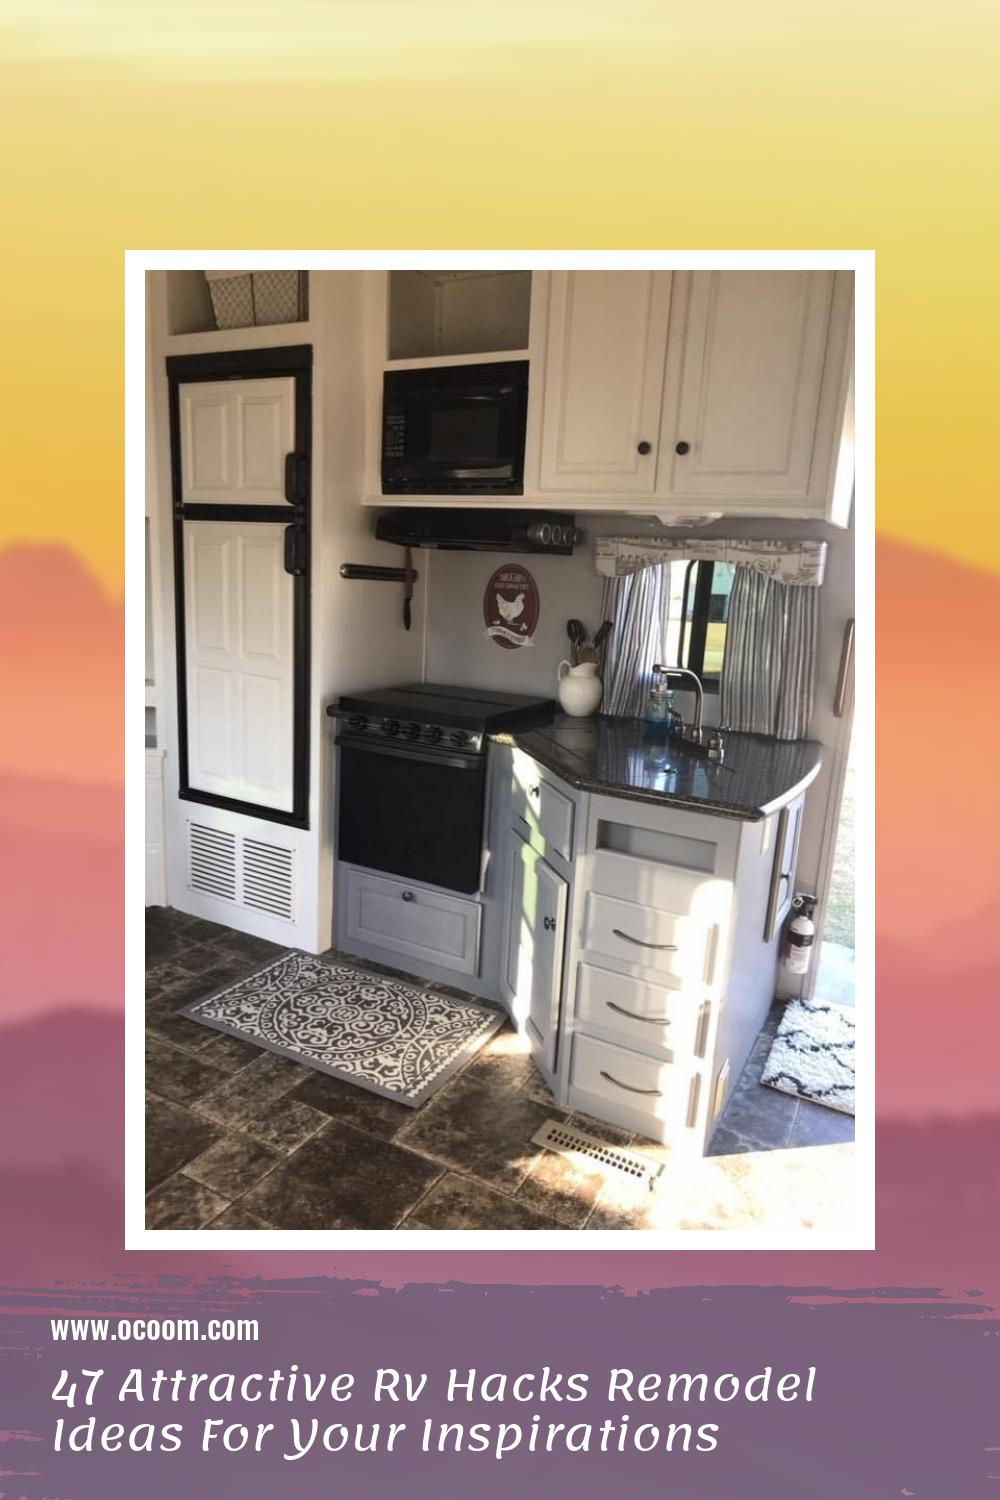 47 Attractive Rv Hacks Remodel Ideas For Your Inspirations 45